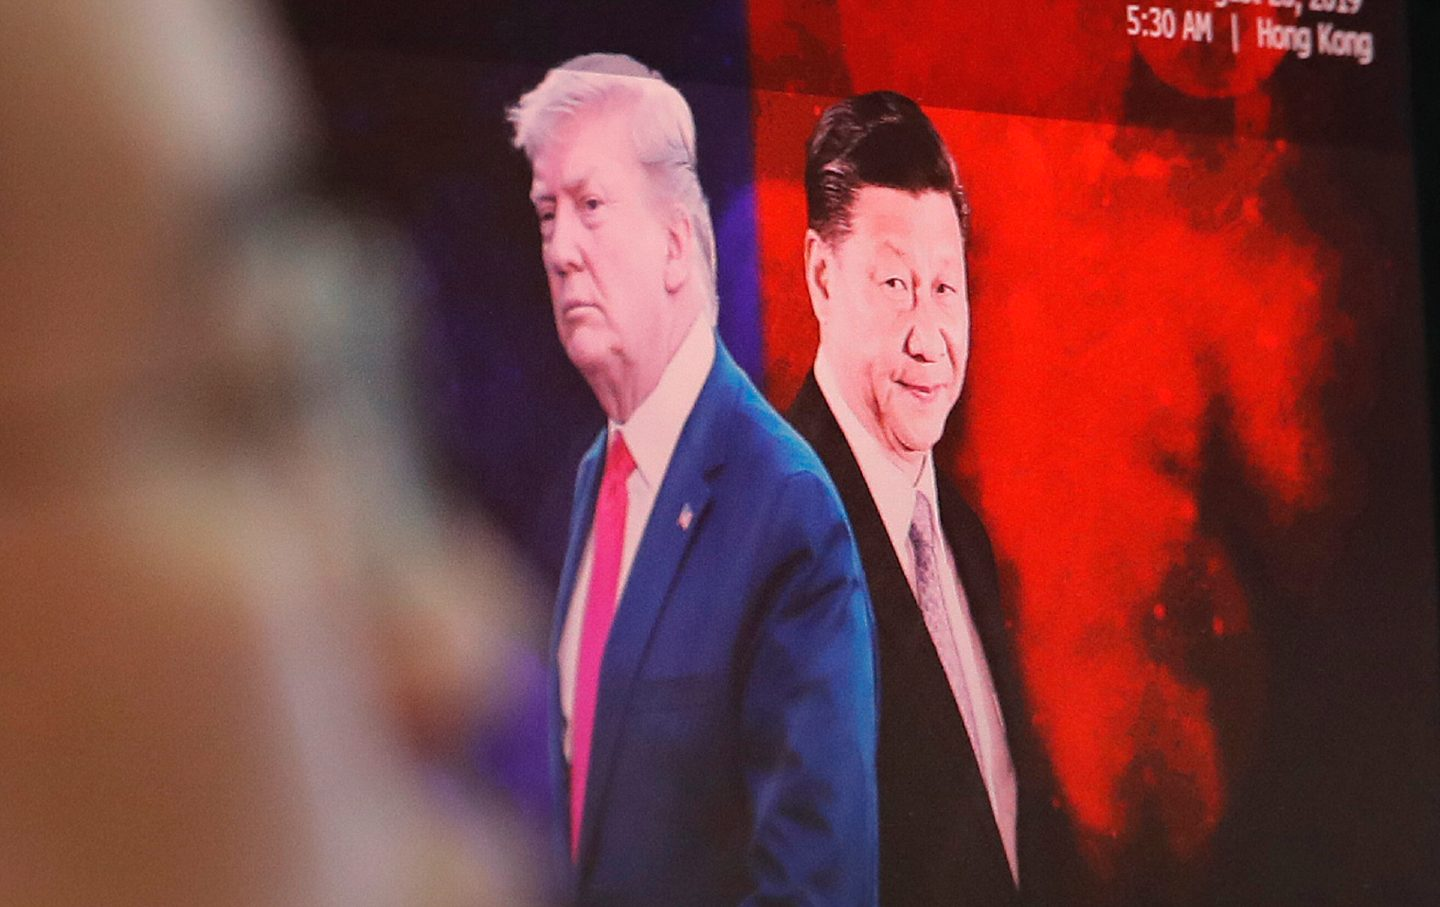 Chinese President Xi Jinping, right, and U.S. President Donald Trump